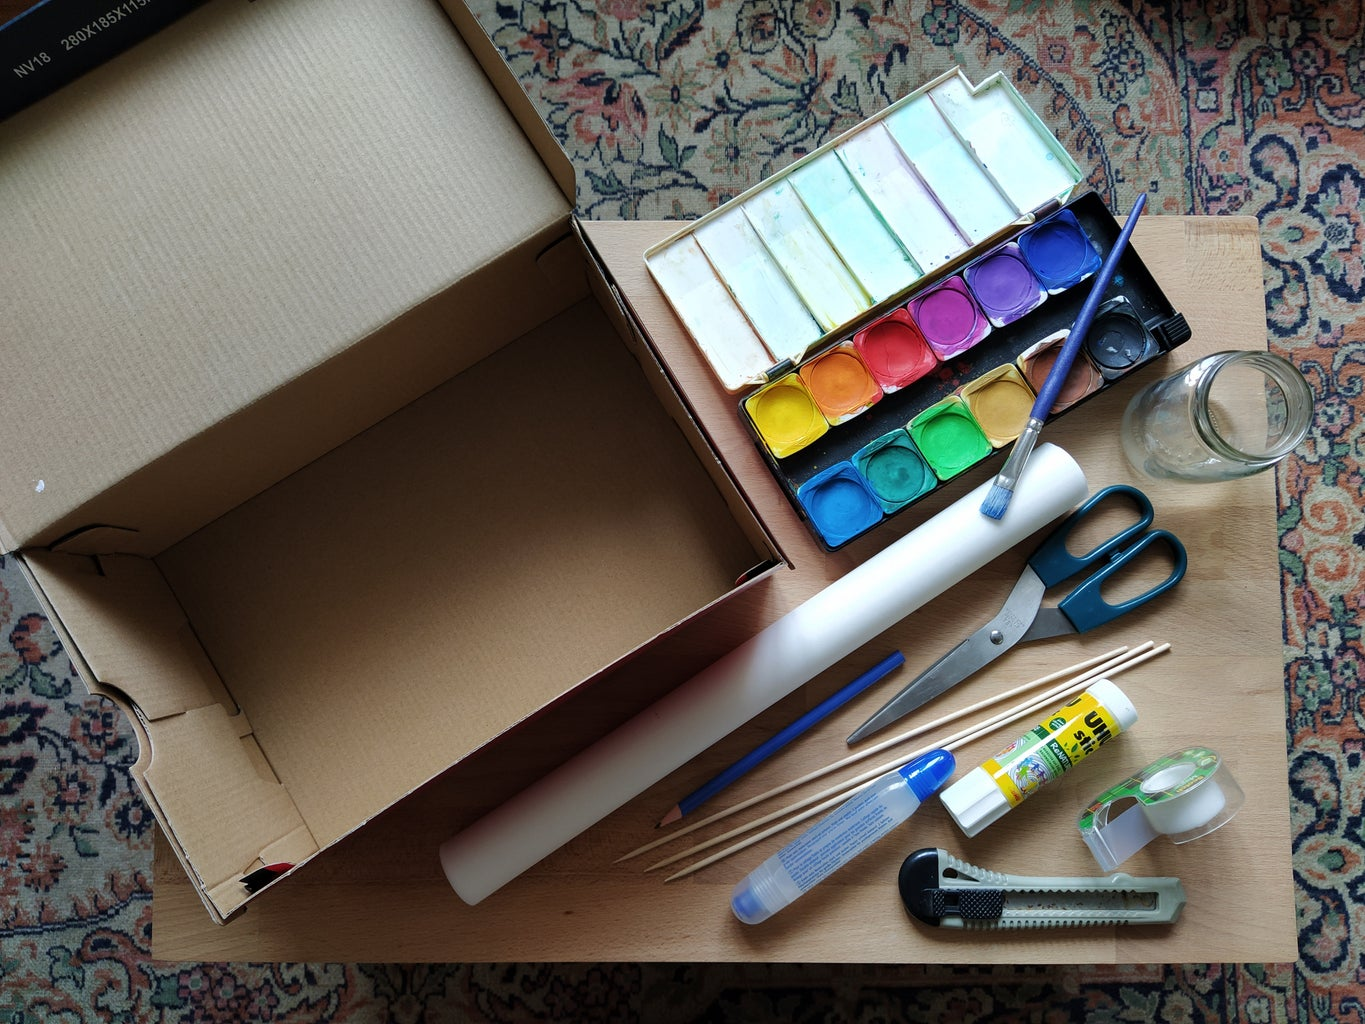 Shadow Theatre in a Shoebox